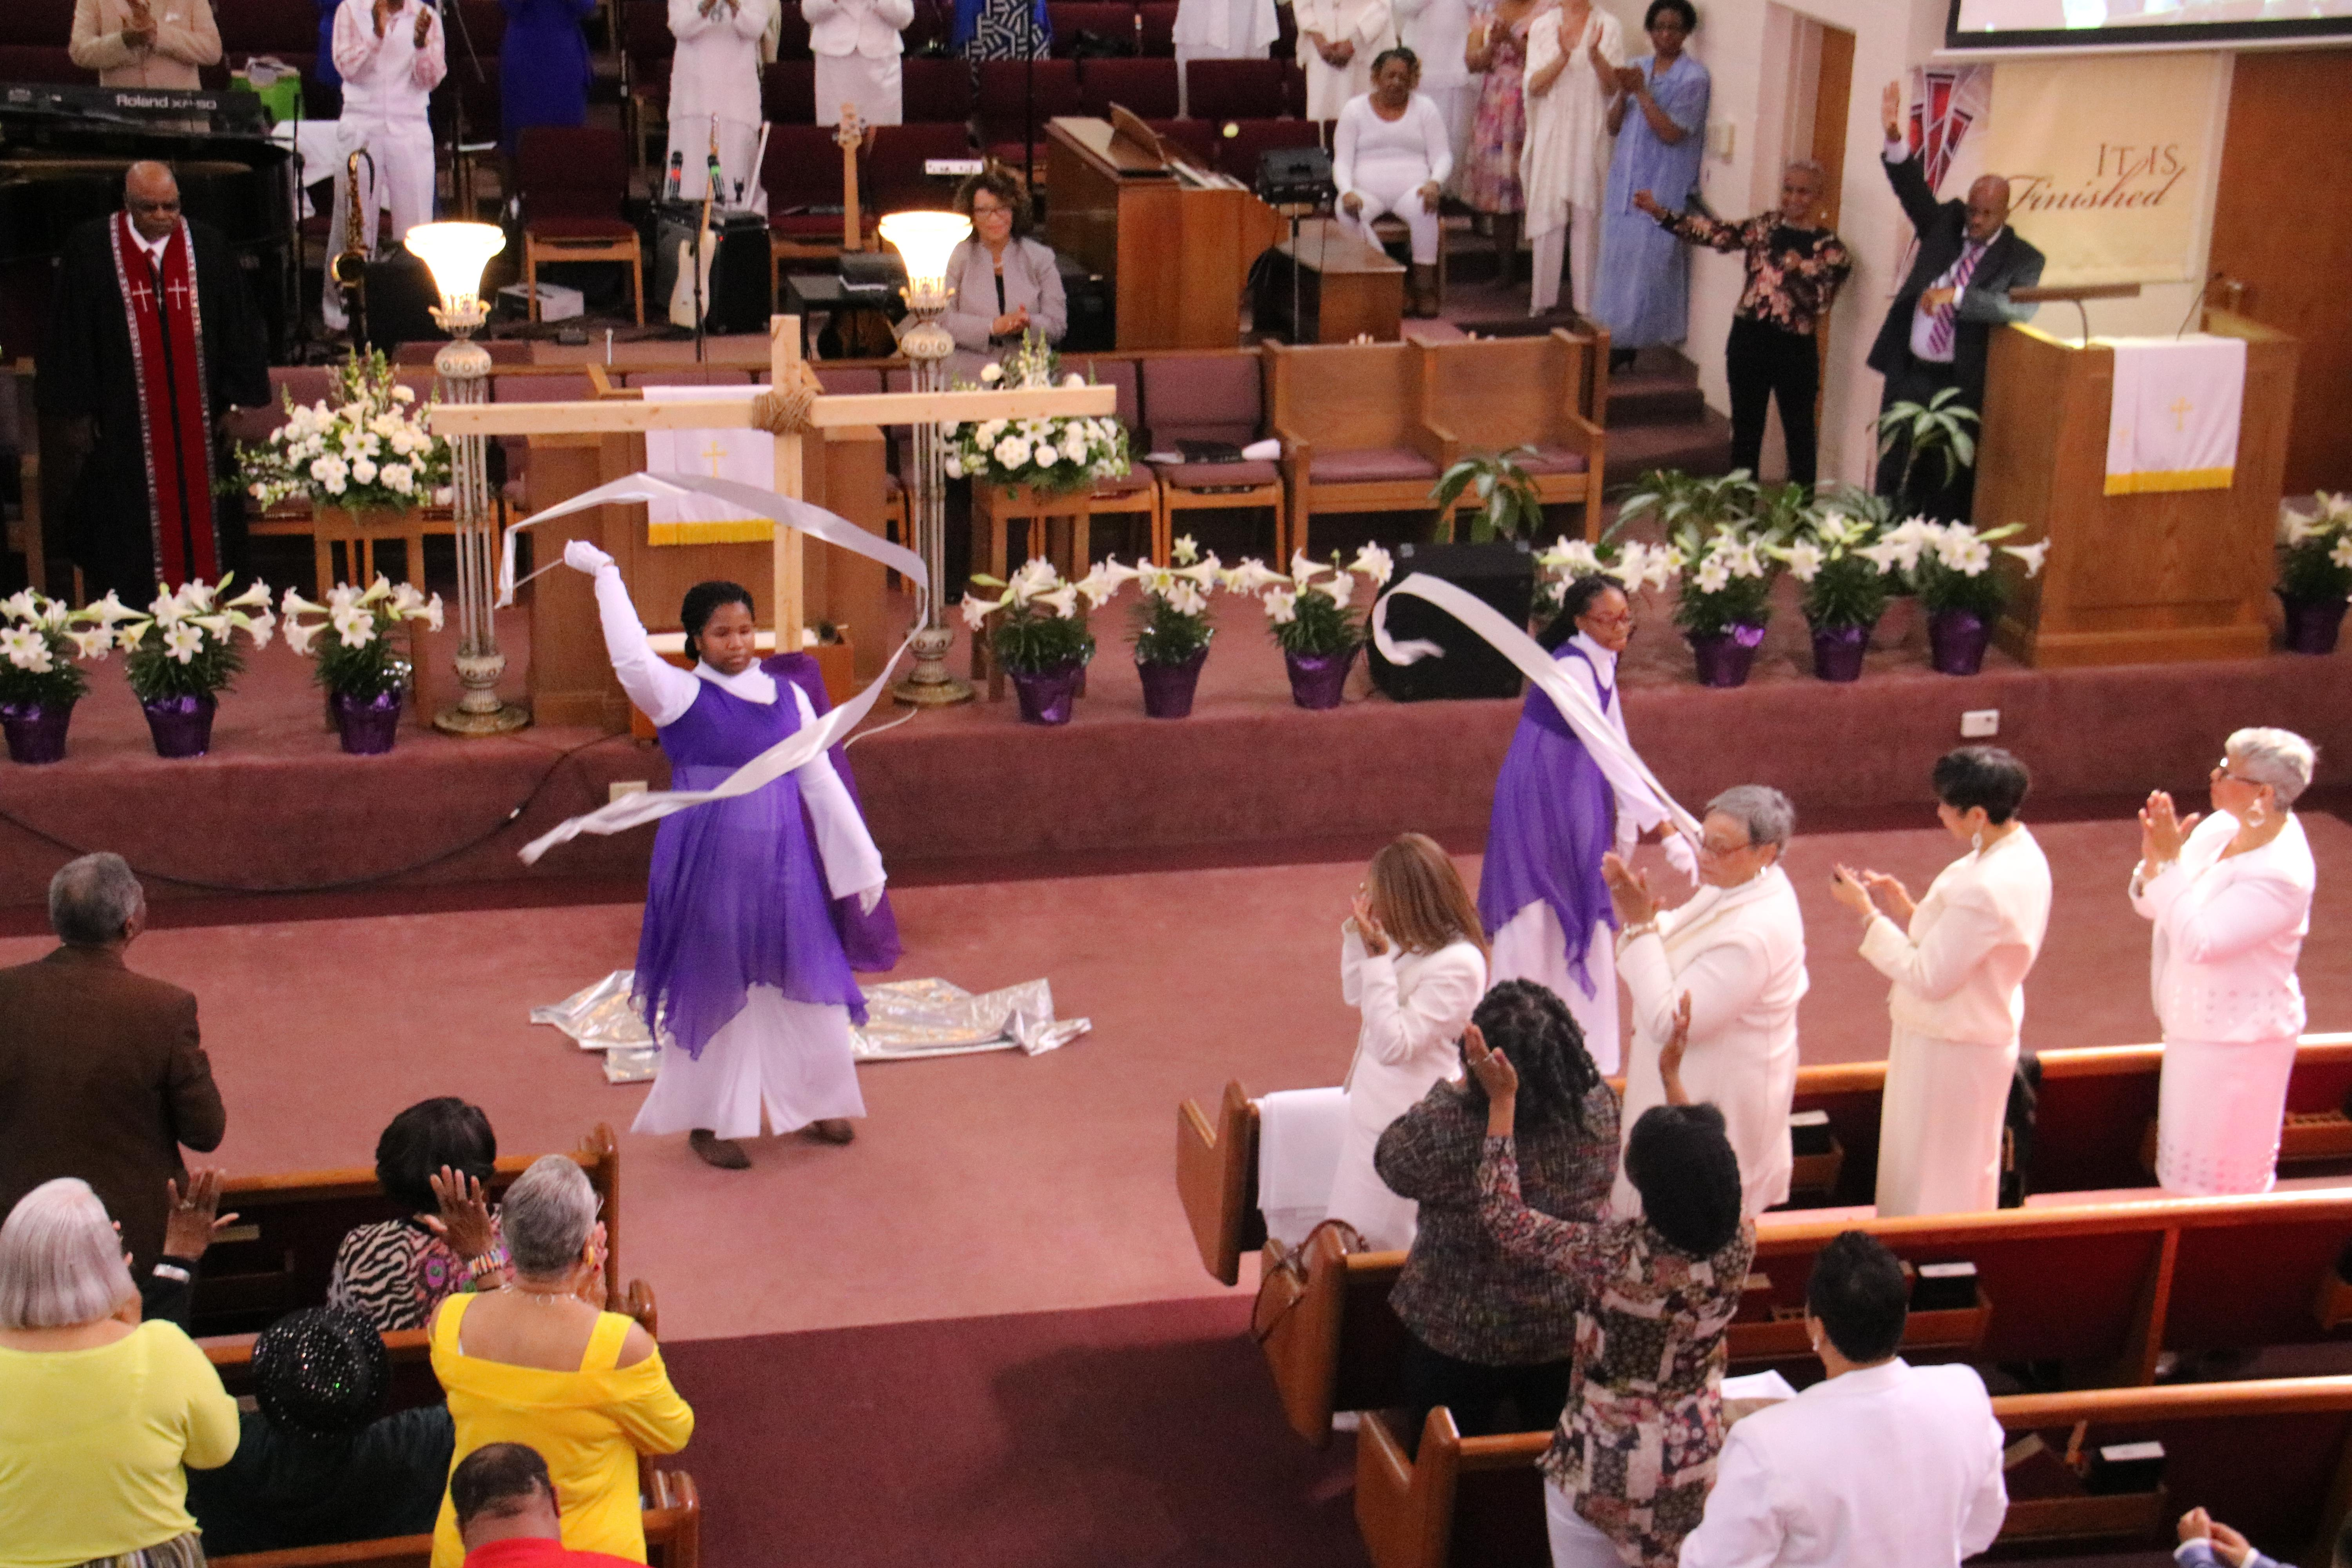 Praise Dancers - Easter Sunday 2018